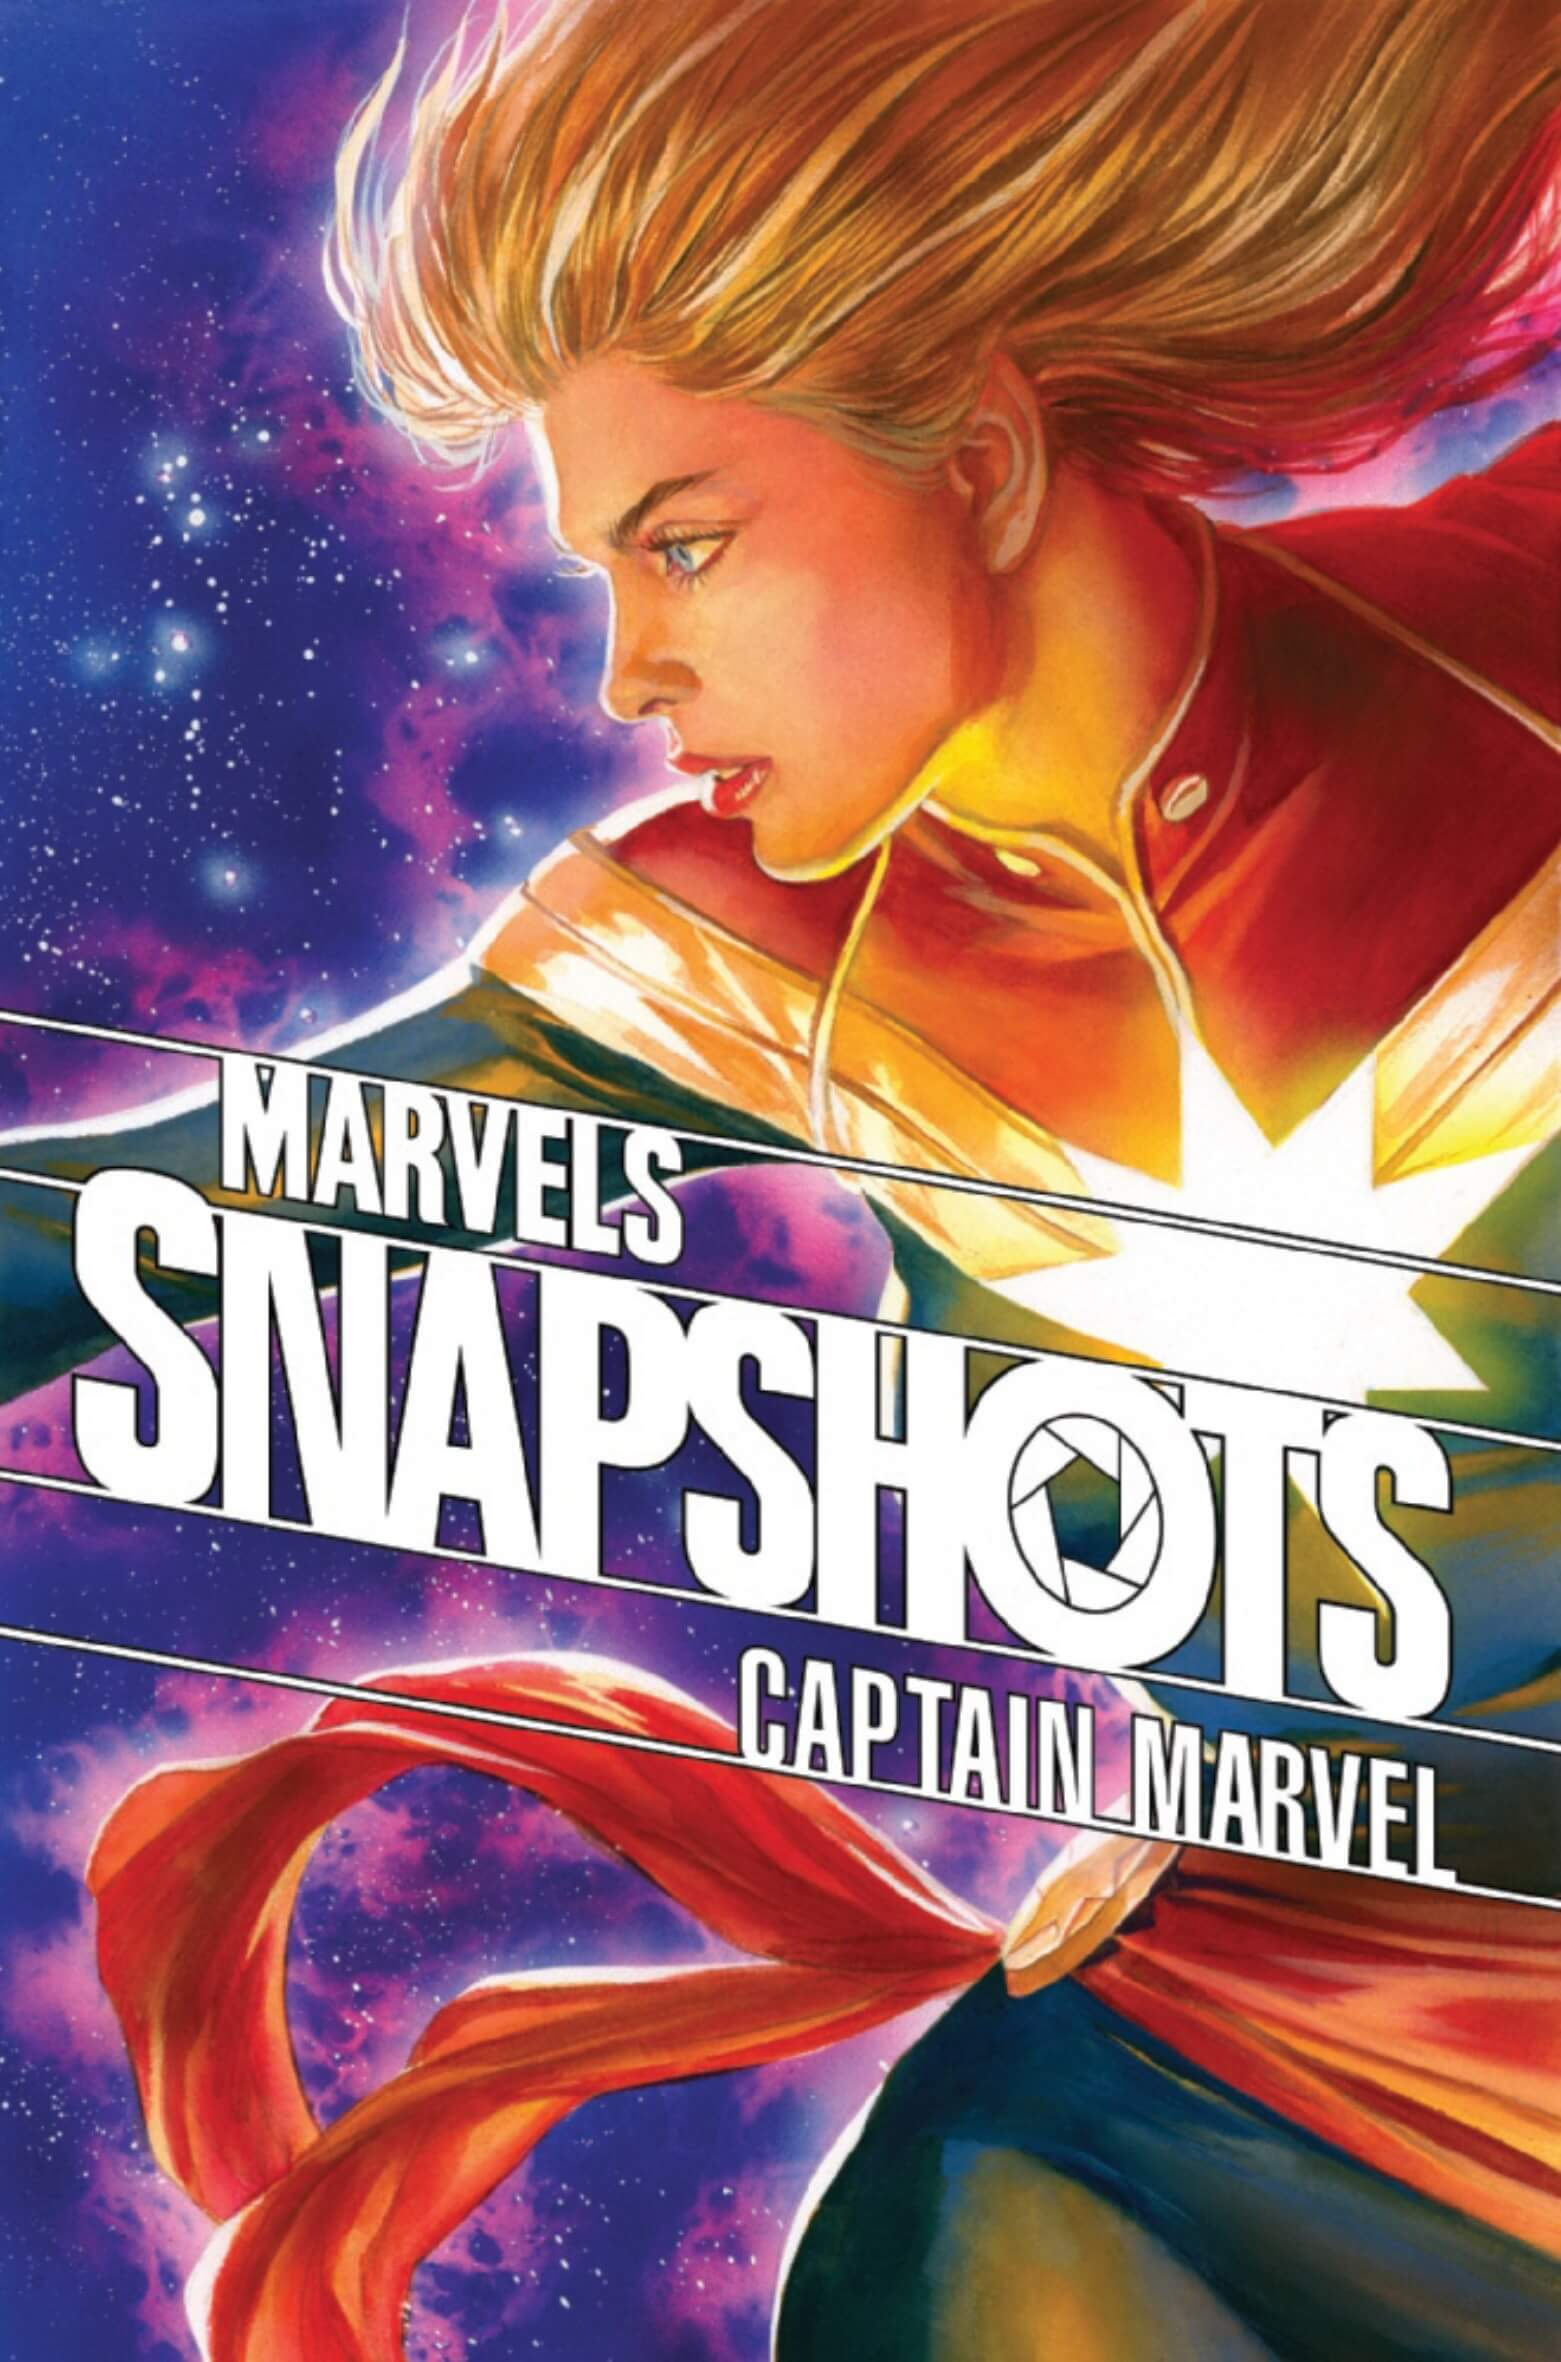 Captain Marvel: Marvels Snapshots #1 'What's Your Story?' Cover Joe Caramagna (Letters), Claire Roe (Artist), Mike Spicer (Colours), Mark Waid (Writer) Marvel Comics February 24, 2021